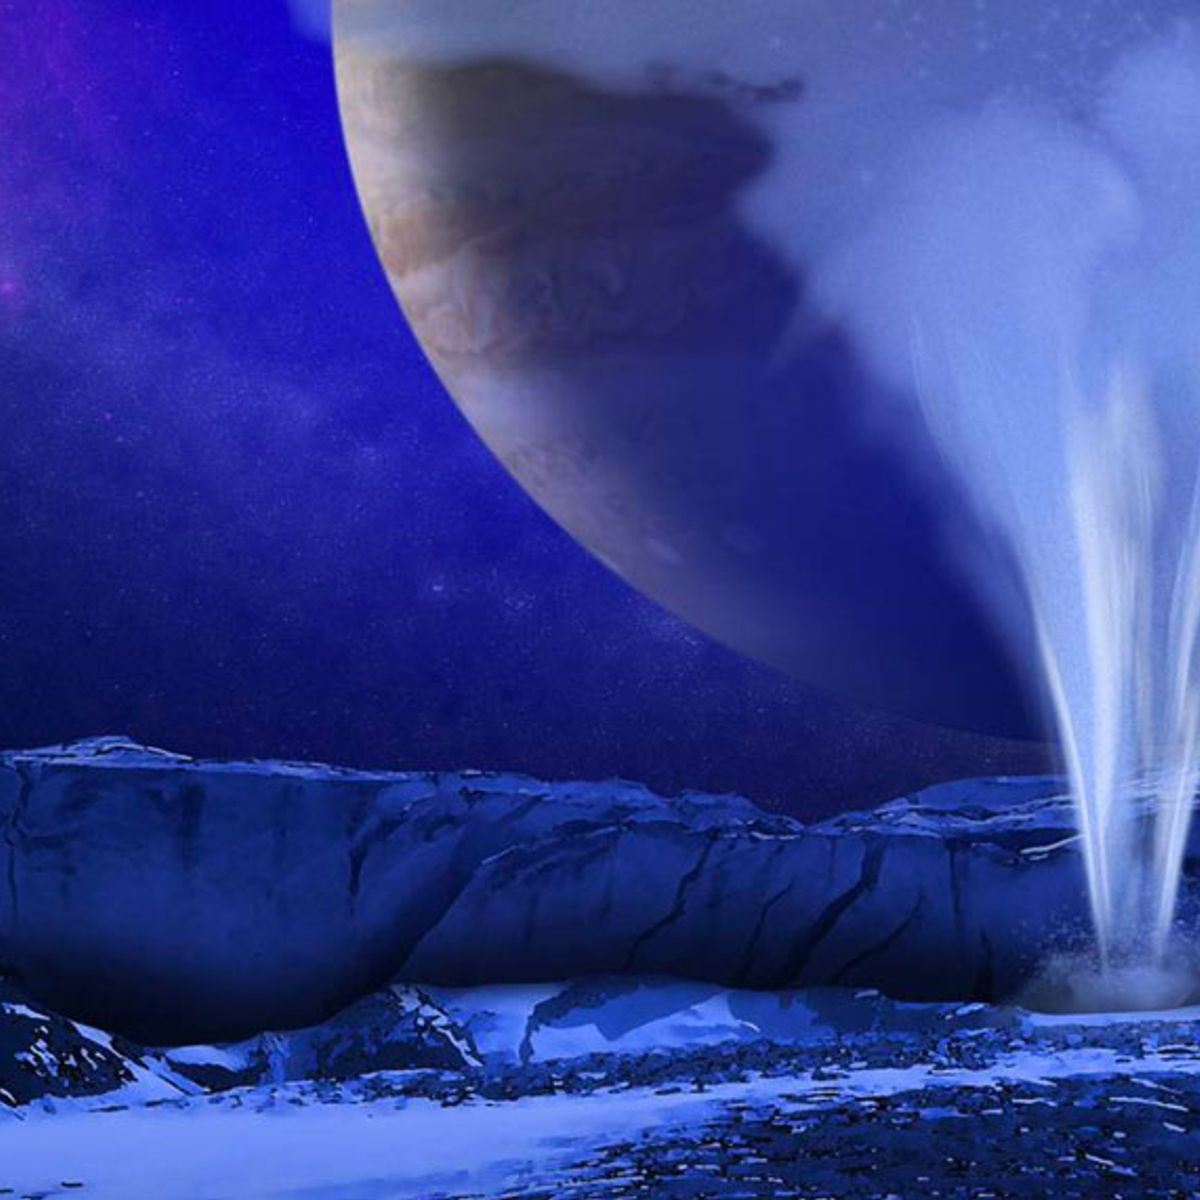 Jupiter's moon Europa is teeming with water